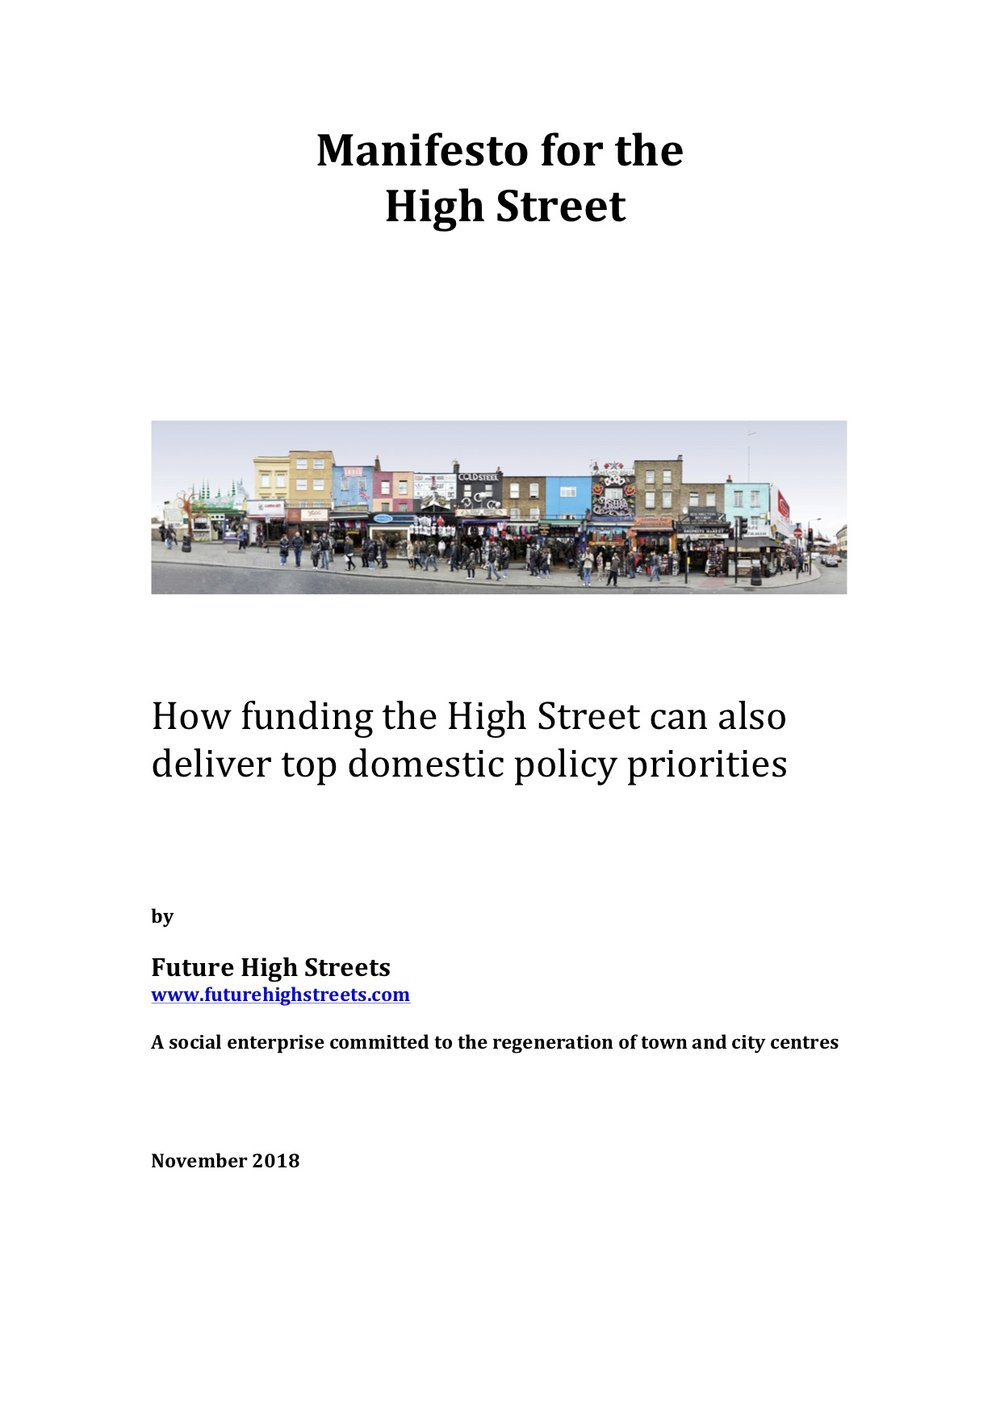 Manifesto for the High Street Nov 2019.jpg